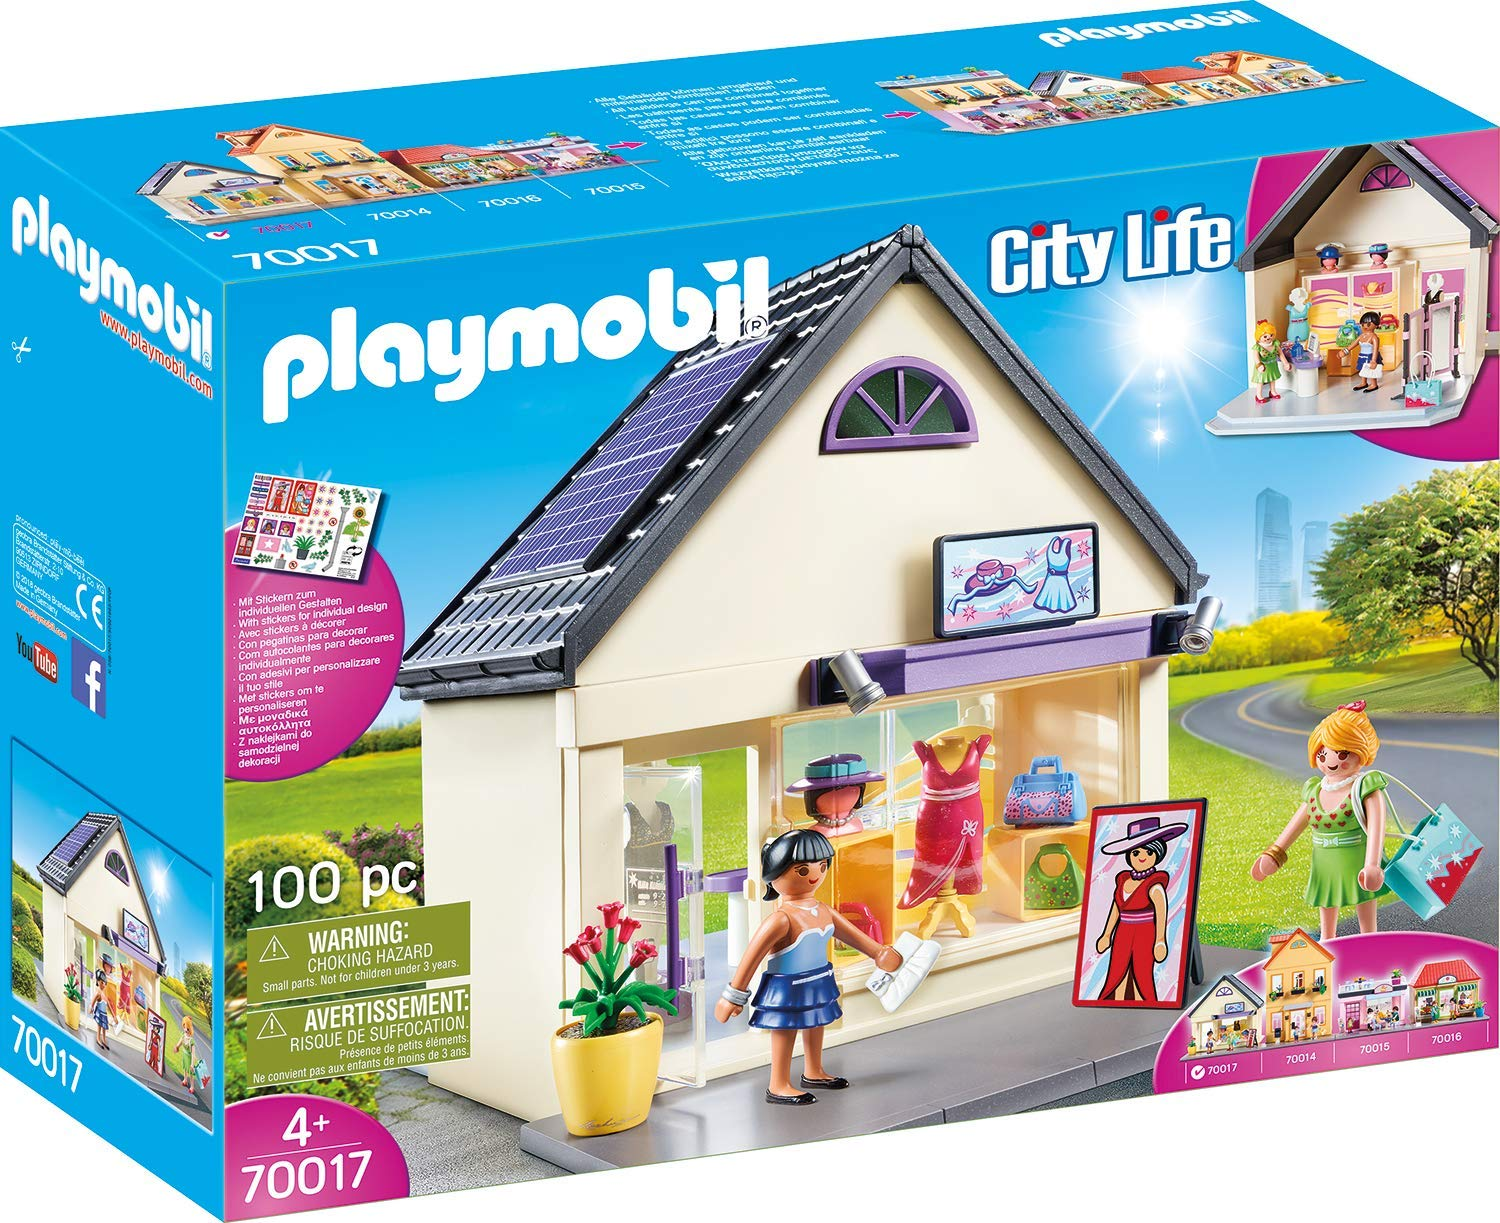 Playmobil City Life My Trendboutique 70017